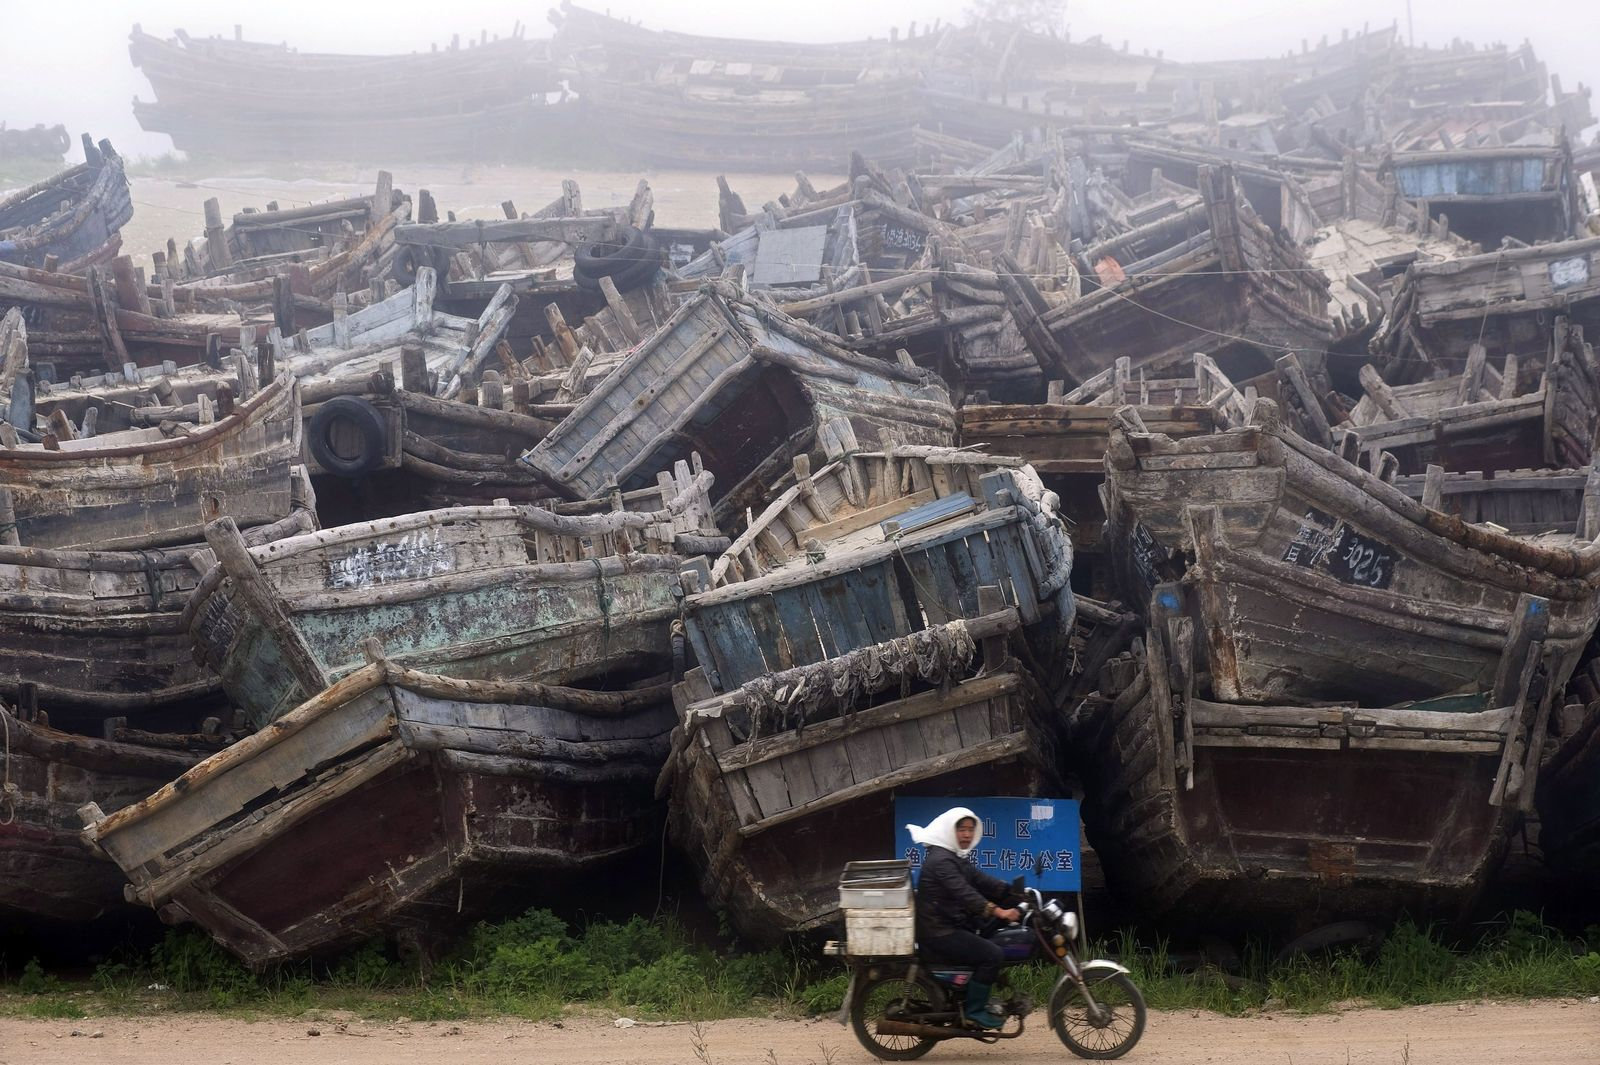 Fishing industry declining resources in East China